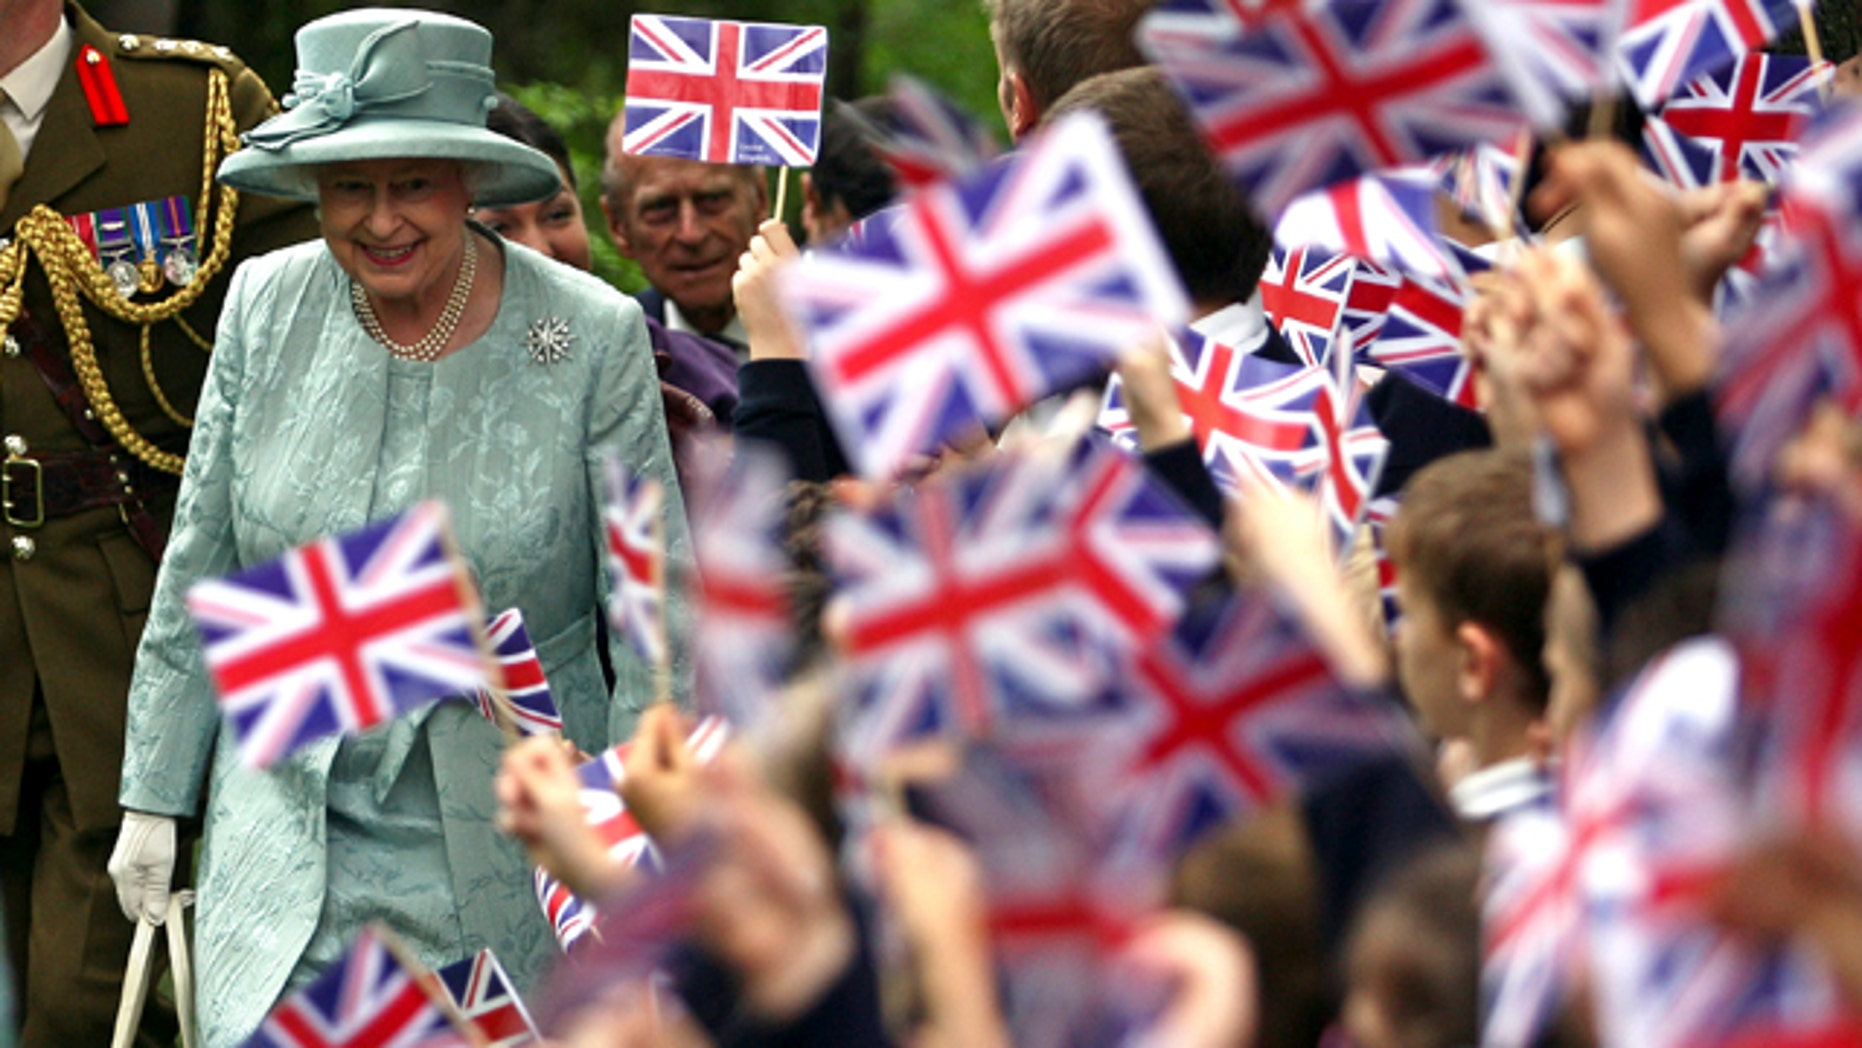 In this May 16, 2008, file photo, Britain's Queen Elizabeth II, left, is welcomed by children waving Britain's flag, upon her arrival at the British Embassy in Ankara, Turkey. Encouraged by the largely successful peace process in Northern Ireland, the queen will become the first British monarch to set foot in the Republic of Ireland on Tuesday, May 17, 2011.